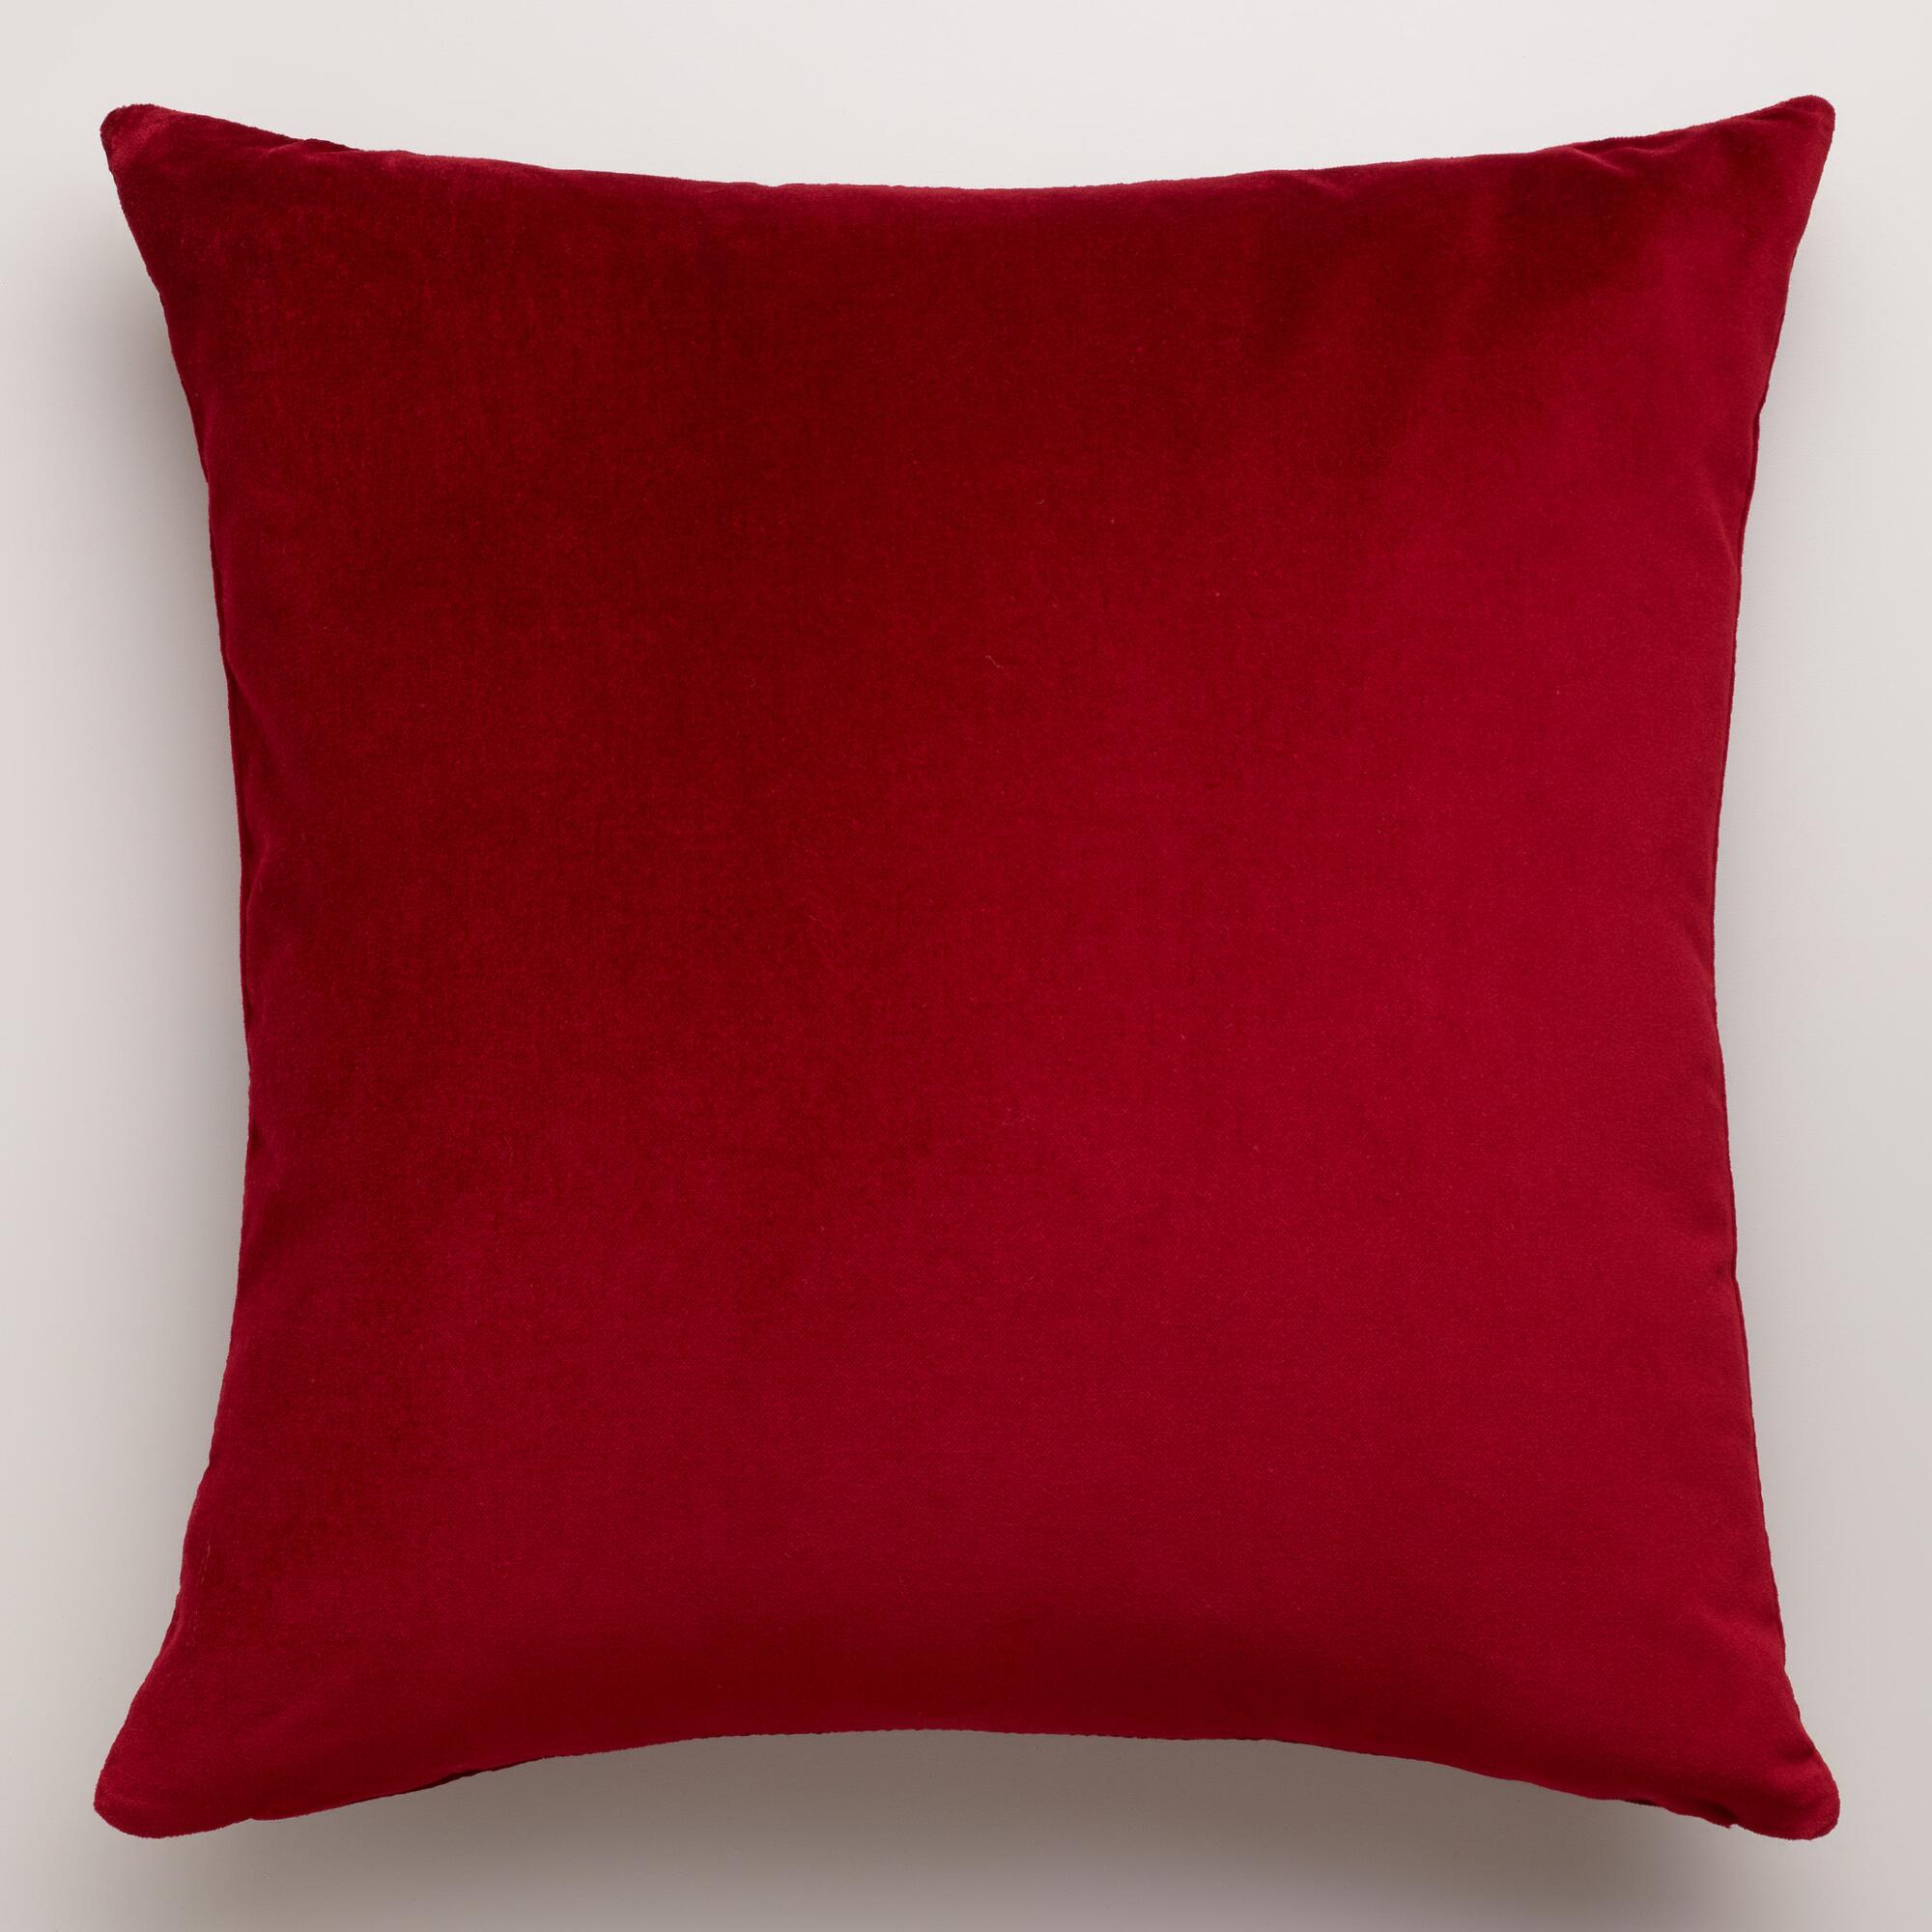 Decorative Pillows Images : Sofa Pillows ~ Home & Interior Design